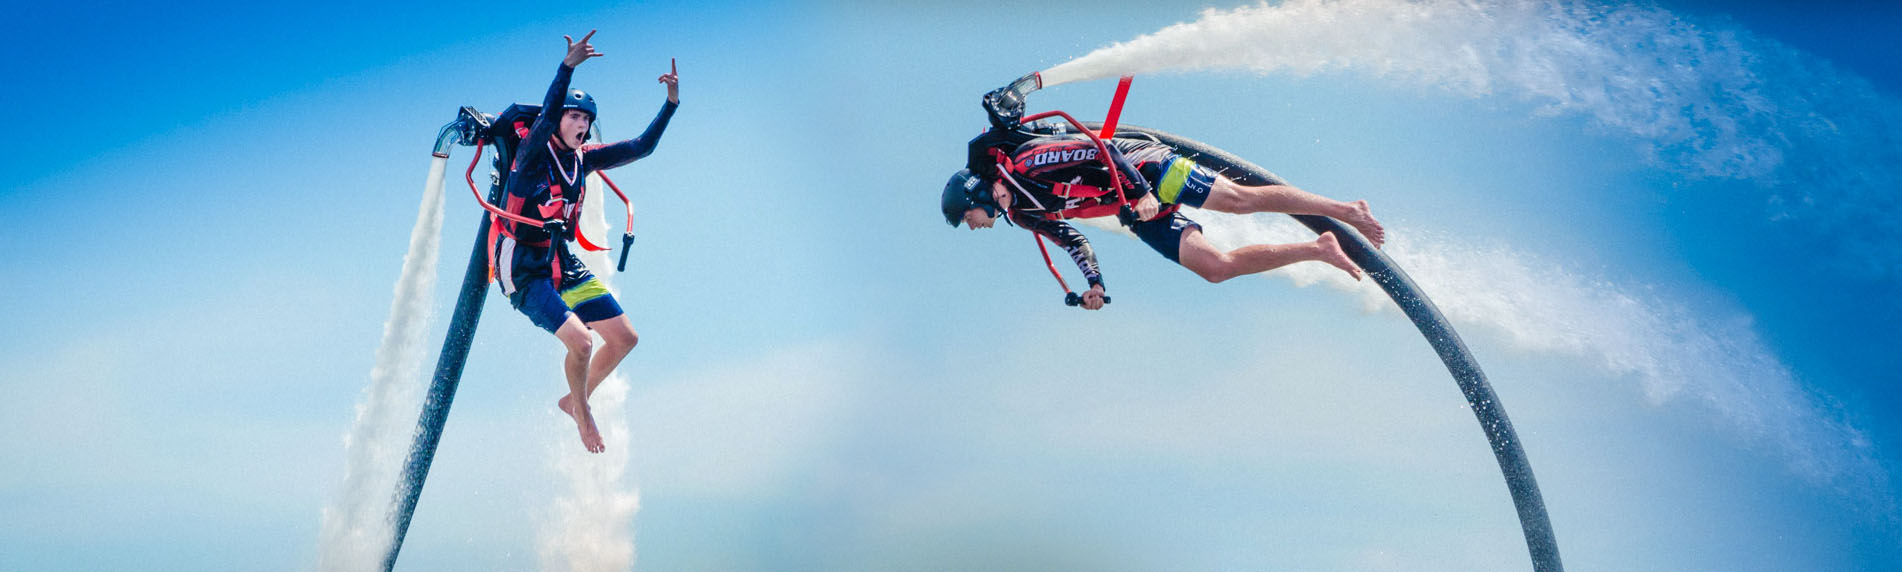 Jetpack Water Sports Experience in Dubai with Rayna Tours